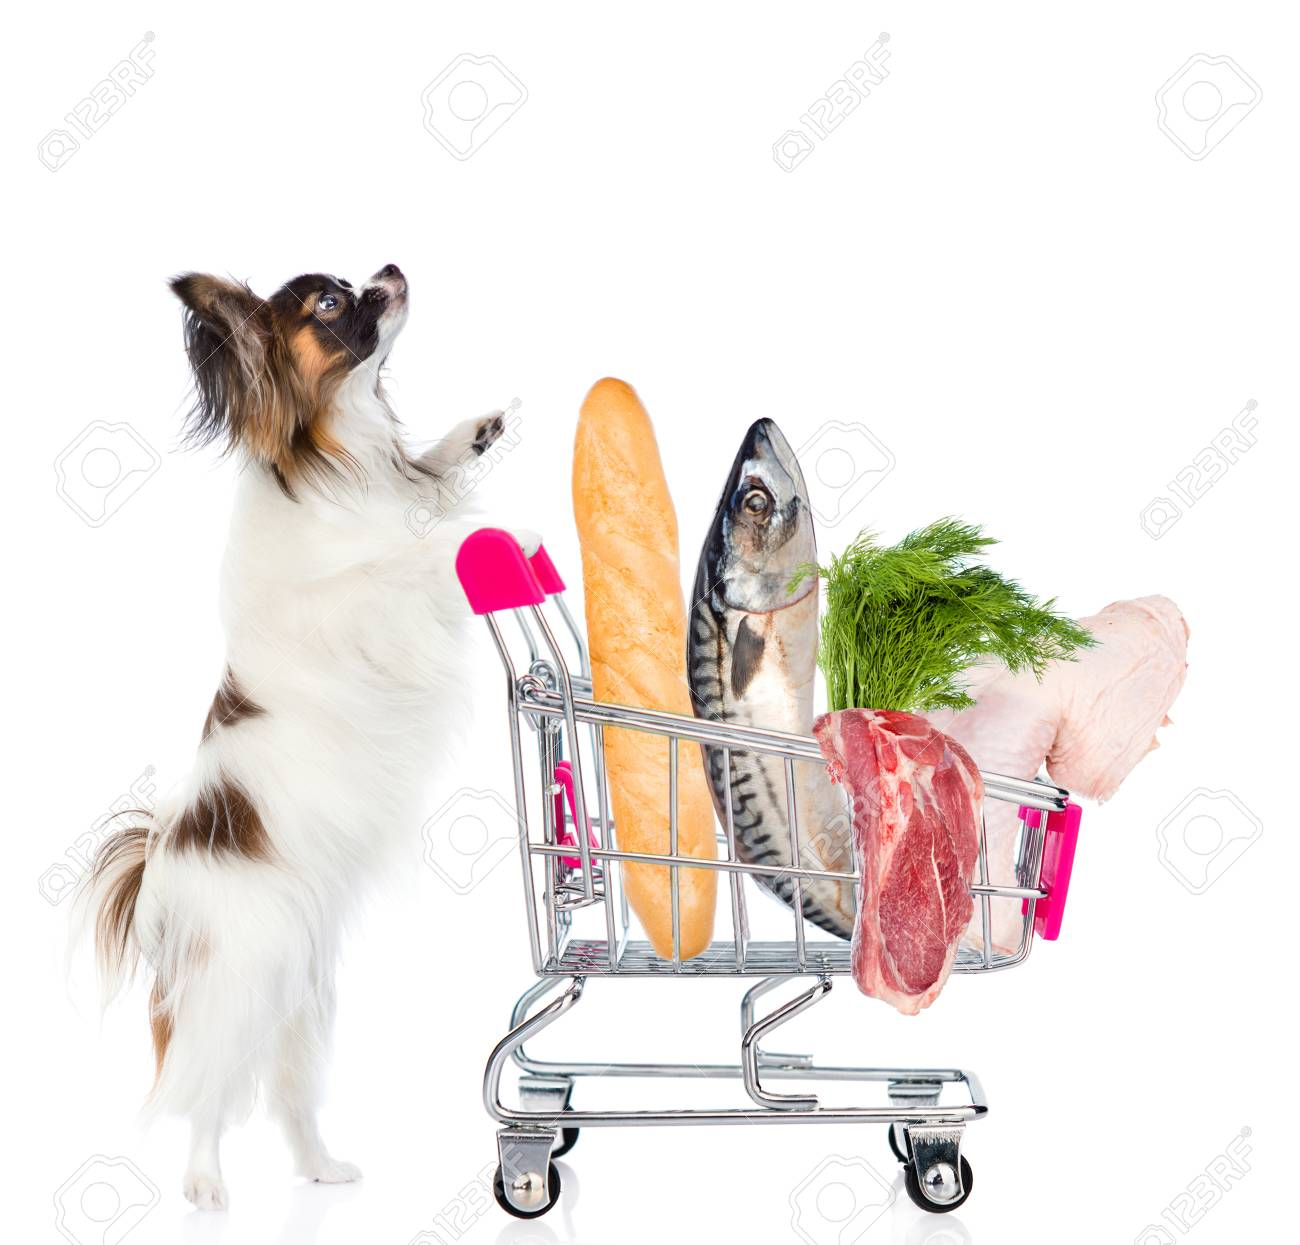 Dog with shopping trolley full of food  isolated on white background